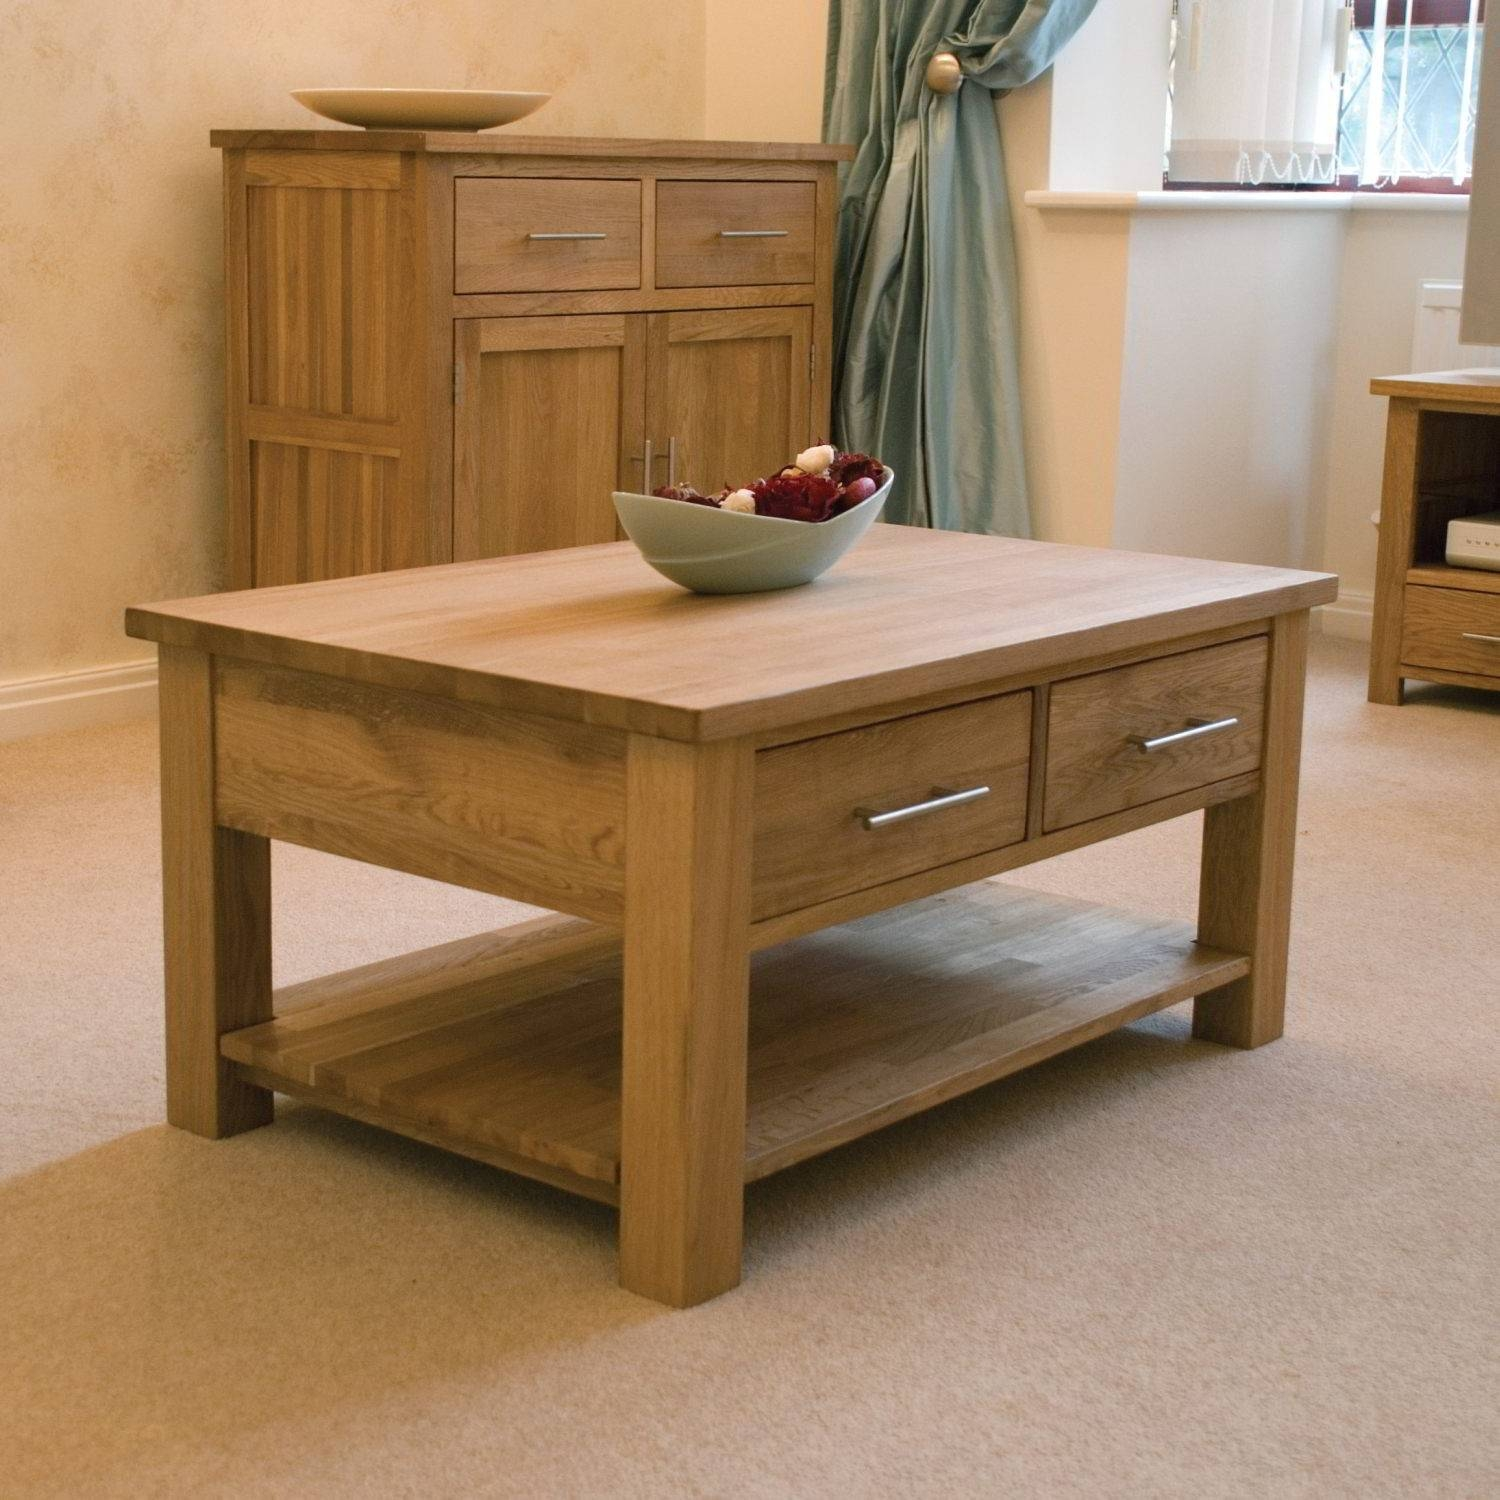 Oak Coffee Table With Drawers Ireland | Coffee Tables Decoration throughout Elevating Coffee Tables (Image 26 of 30)